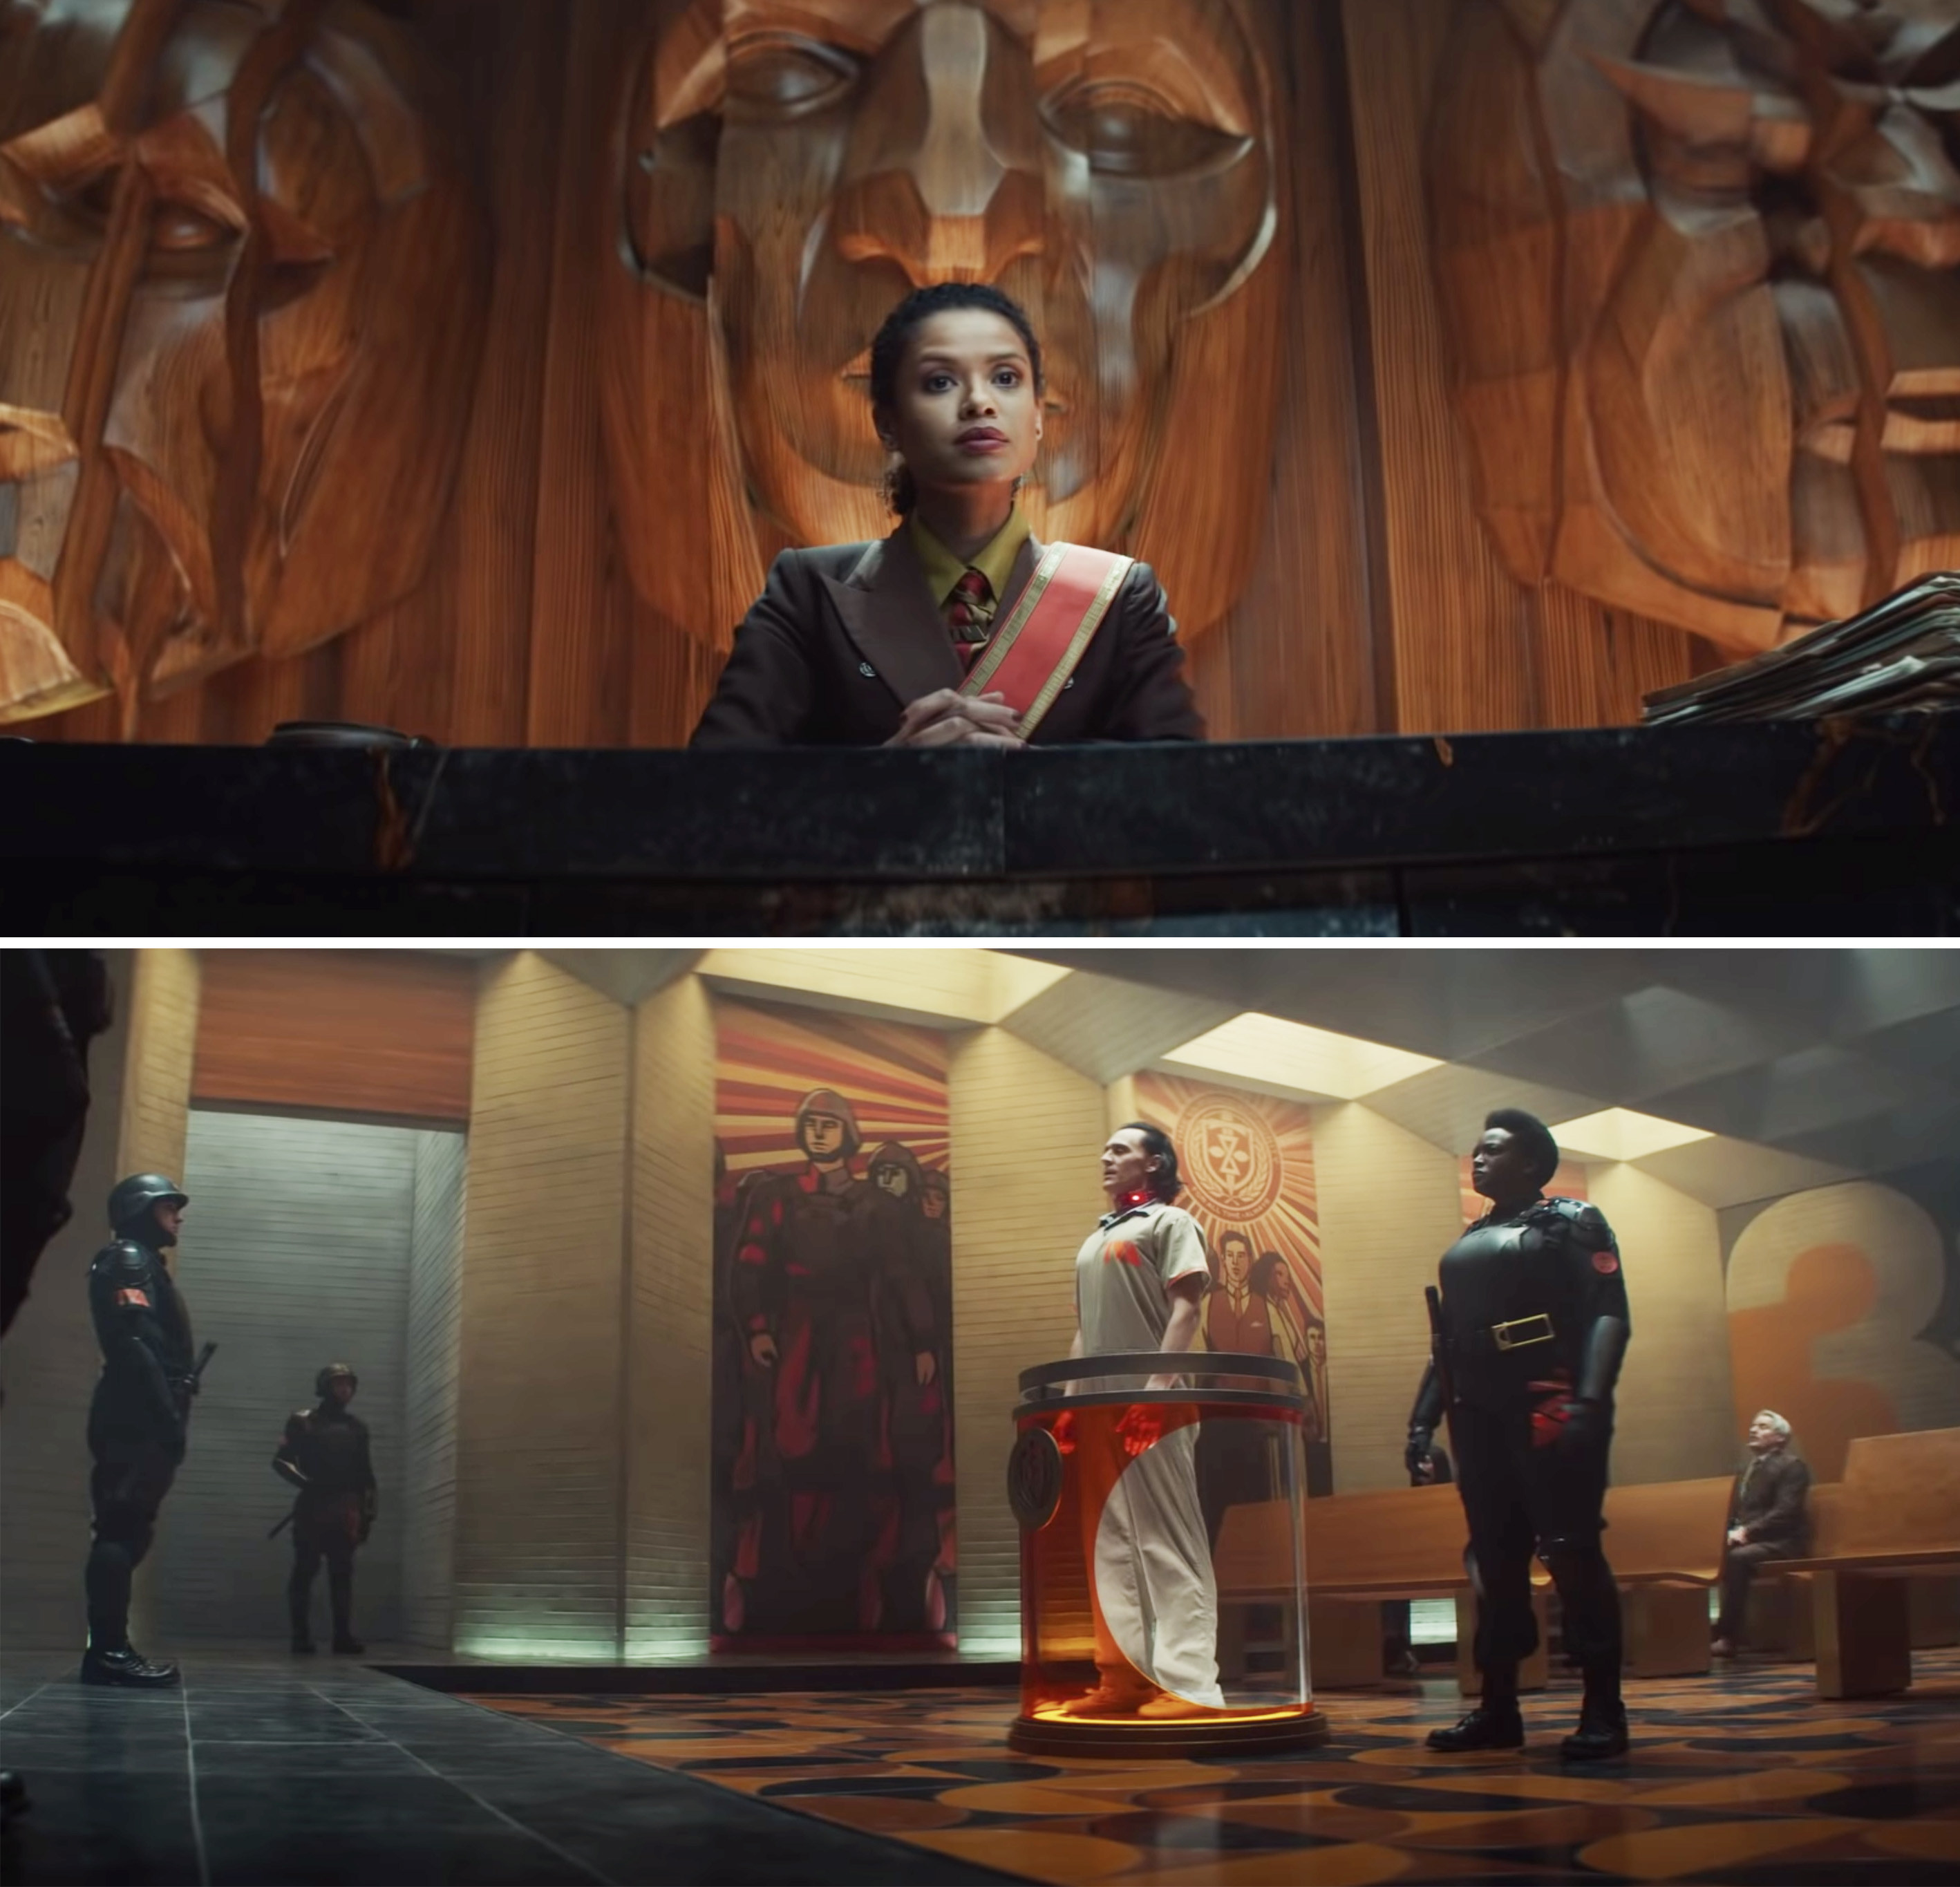 Loki being guarded as he stands before the TVA